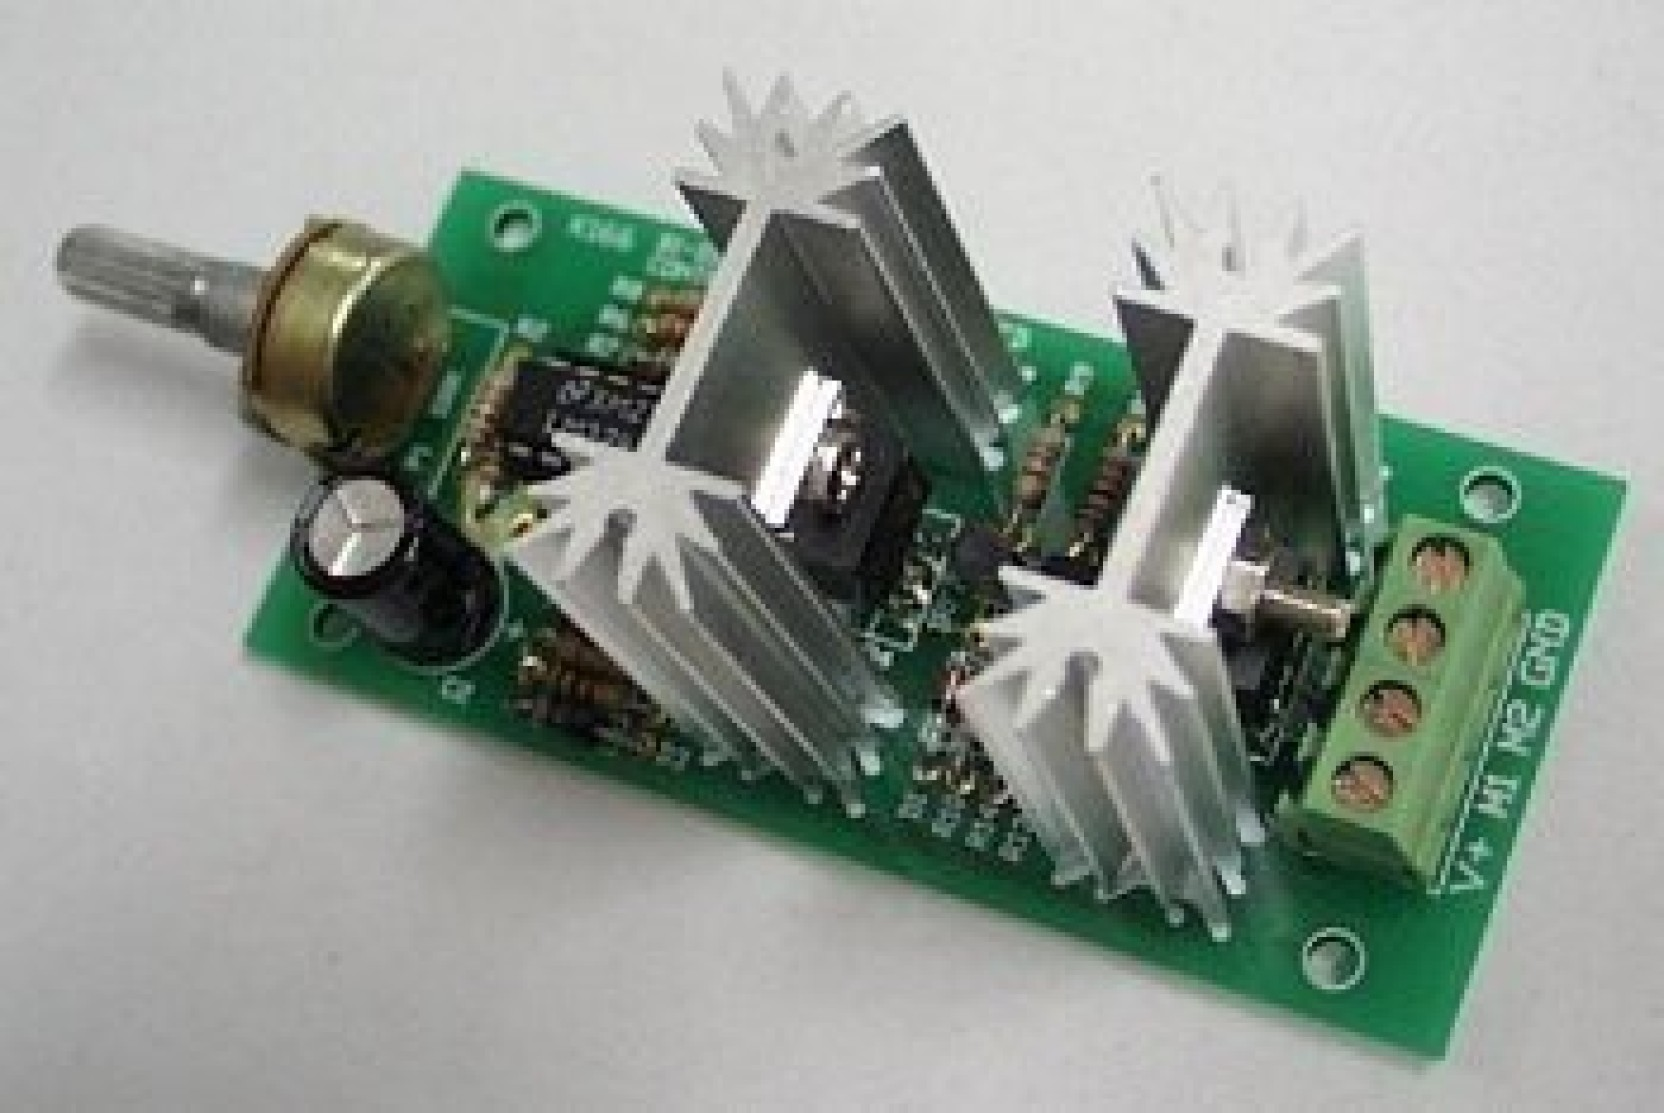 Generic Bidirectional Dc Motor Speed Controller Kit Price In Forward And Reverse The Above Can Be Used To Control Large On Offer